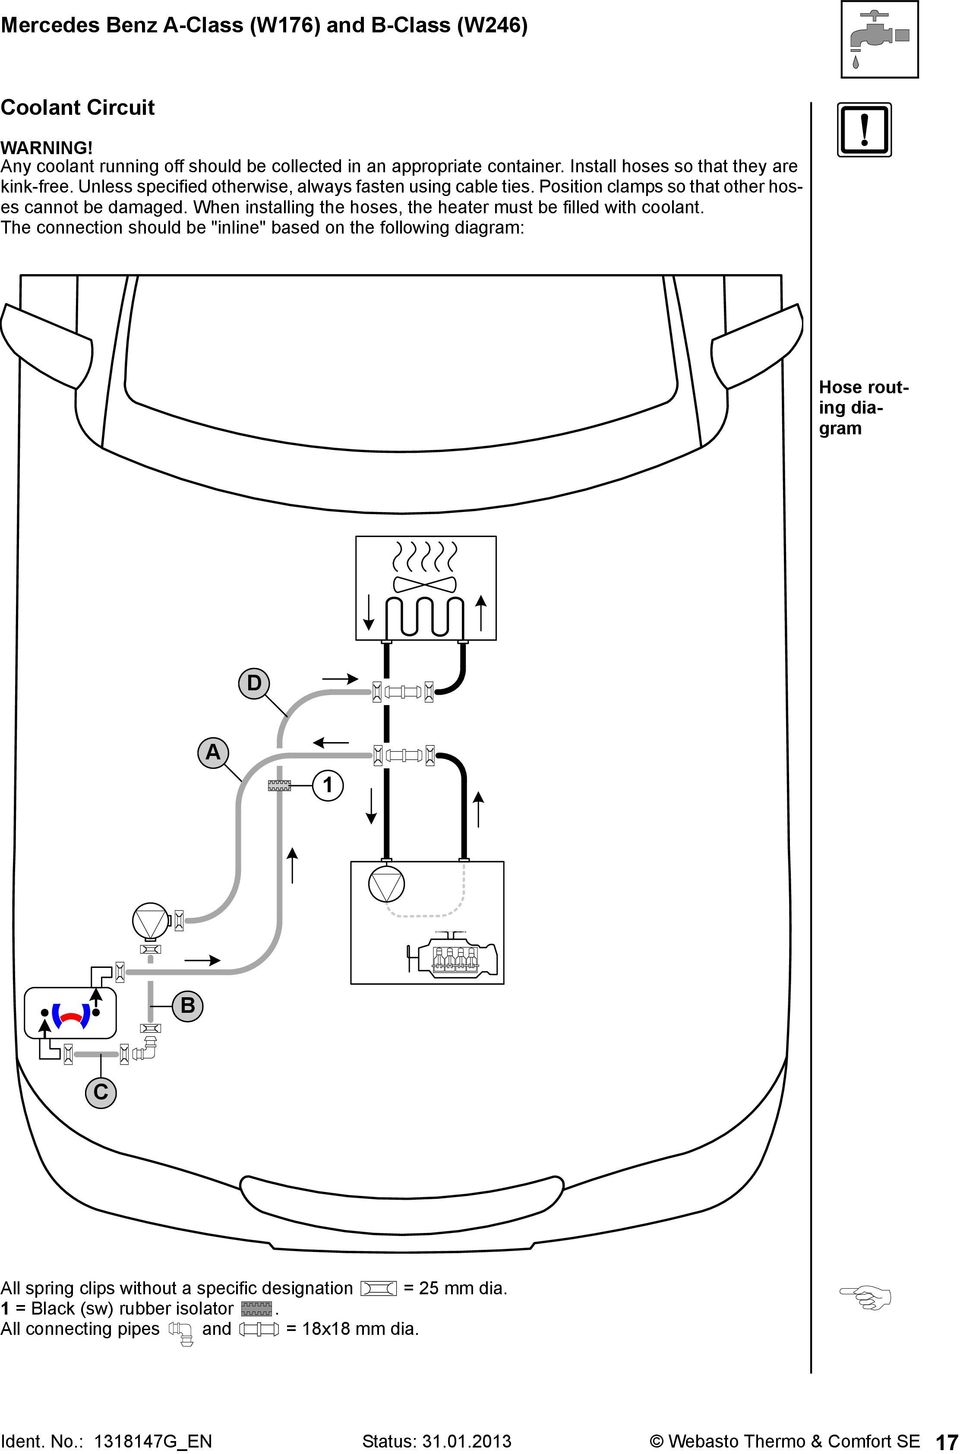 yamaha pacifica 112 wiring diagram free download bull oasis dl co yamaha pacifica wiring diagram [ 960 x 1454 Pixel ]